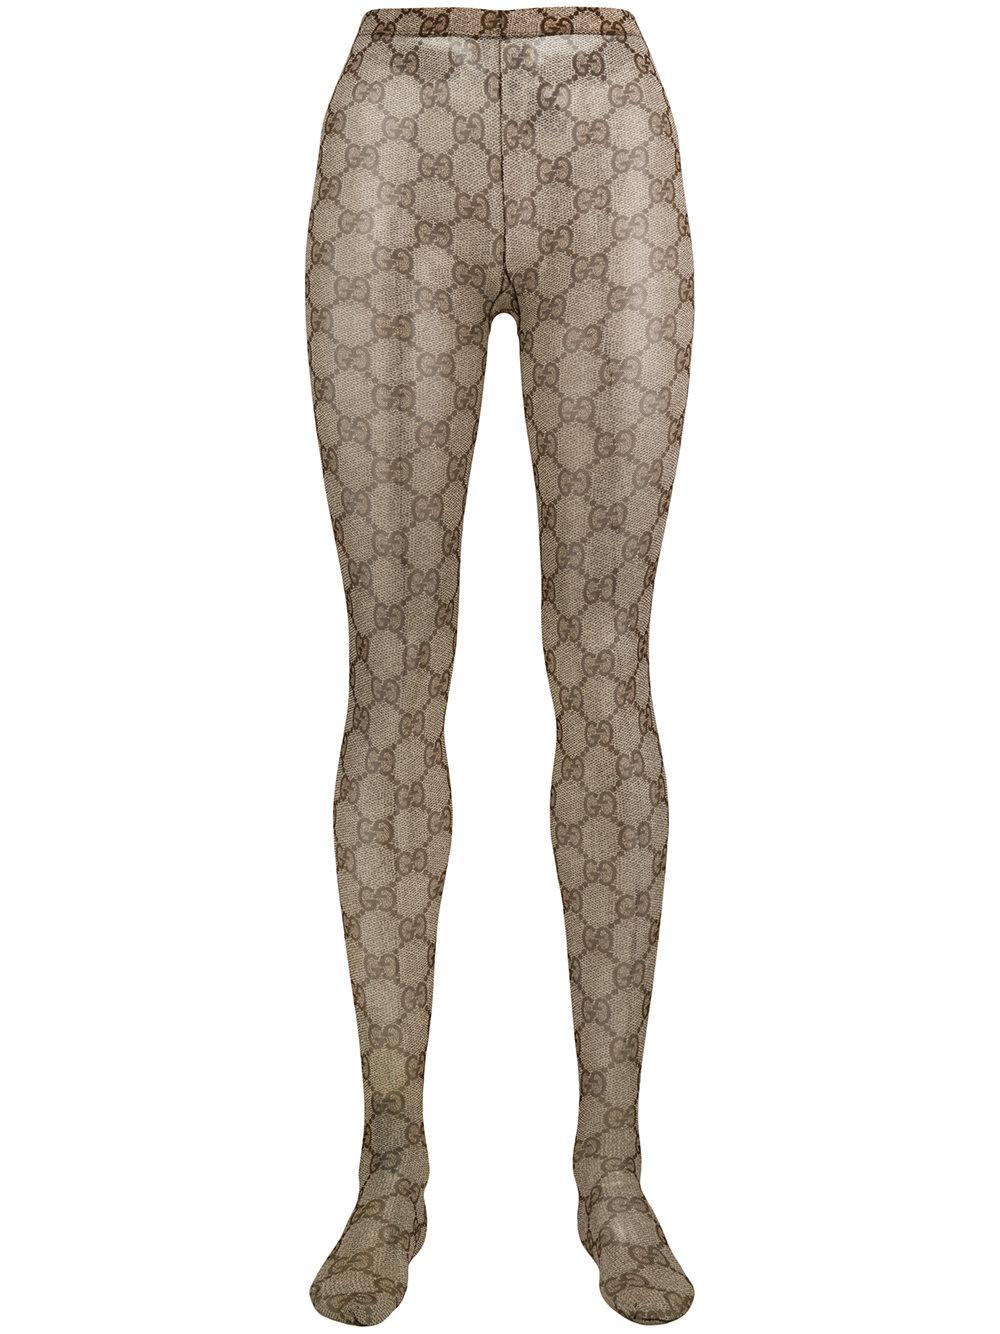 fec346d43b7 Lyst - Gucci Gg Supreme Tights in Brown